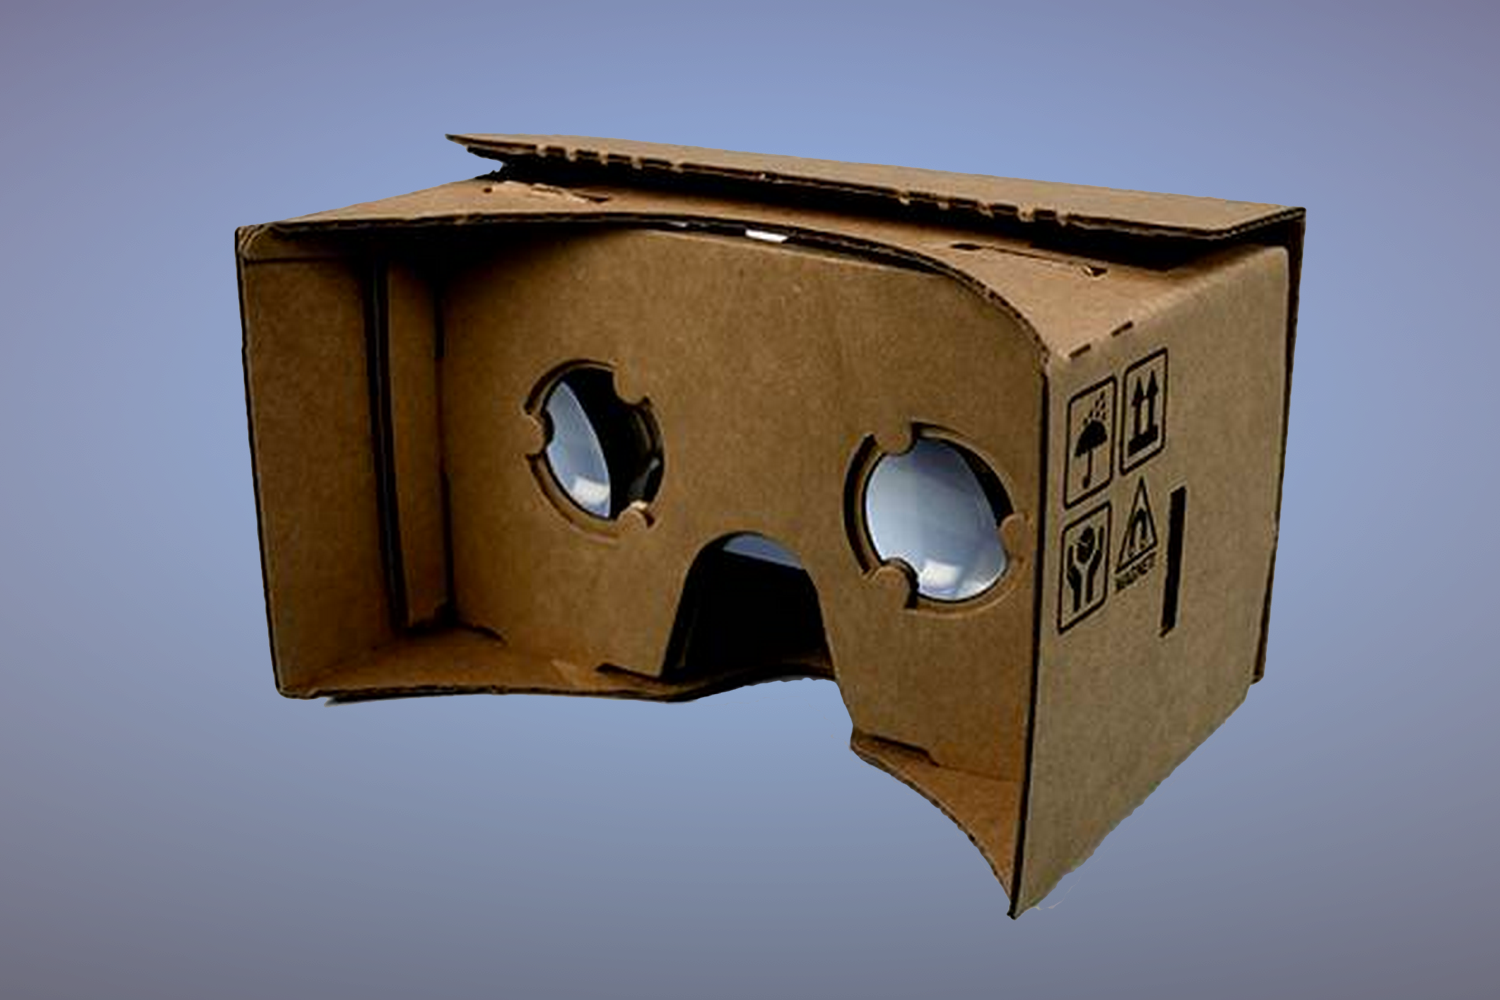 Google's Cardboard VR Headset is Out of the Box